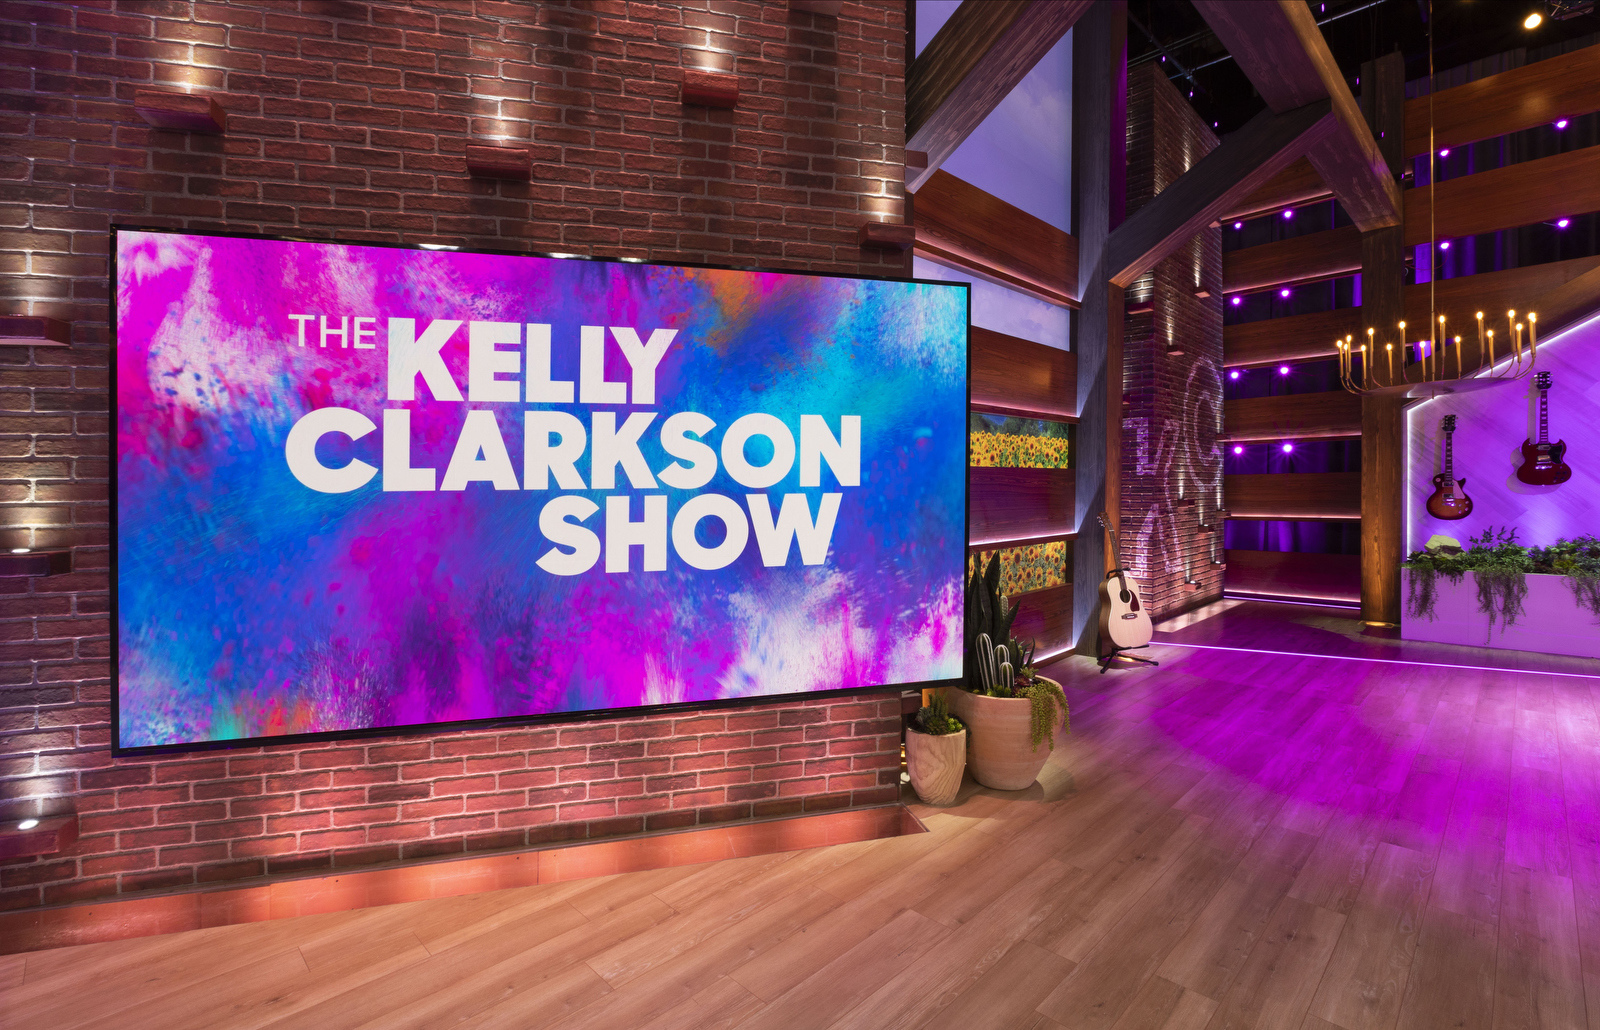 The Kelly Clarkson show shot by Monica Orozco